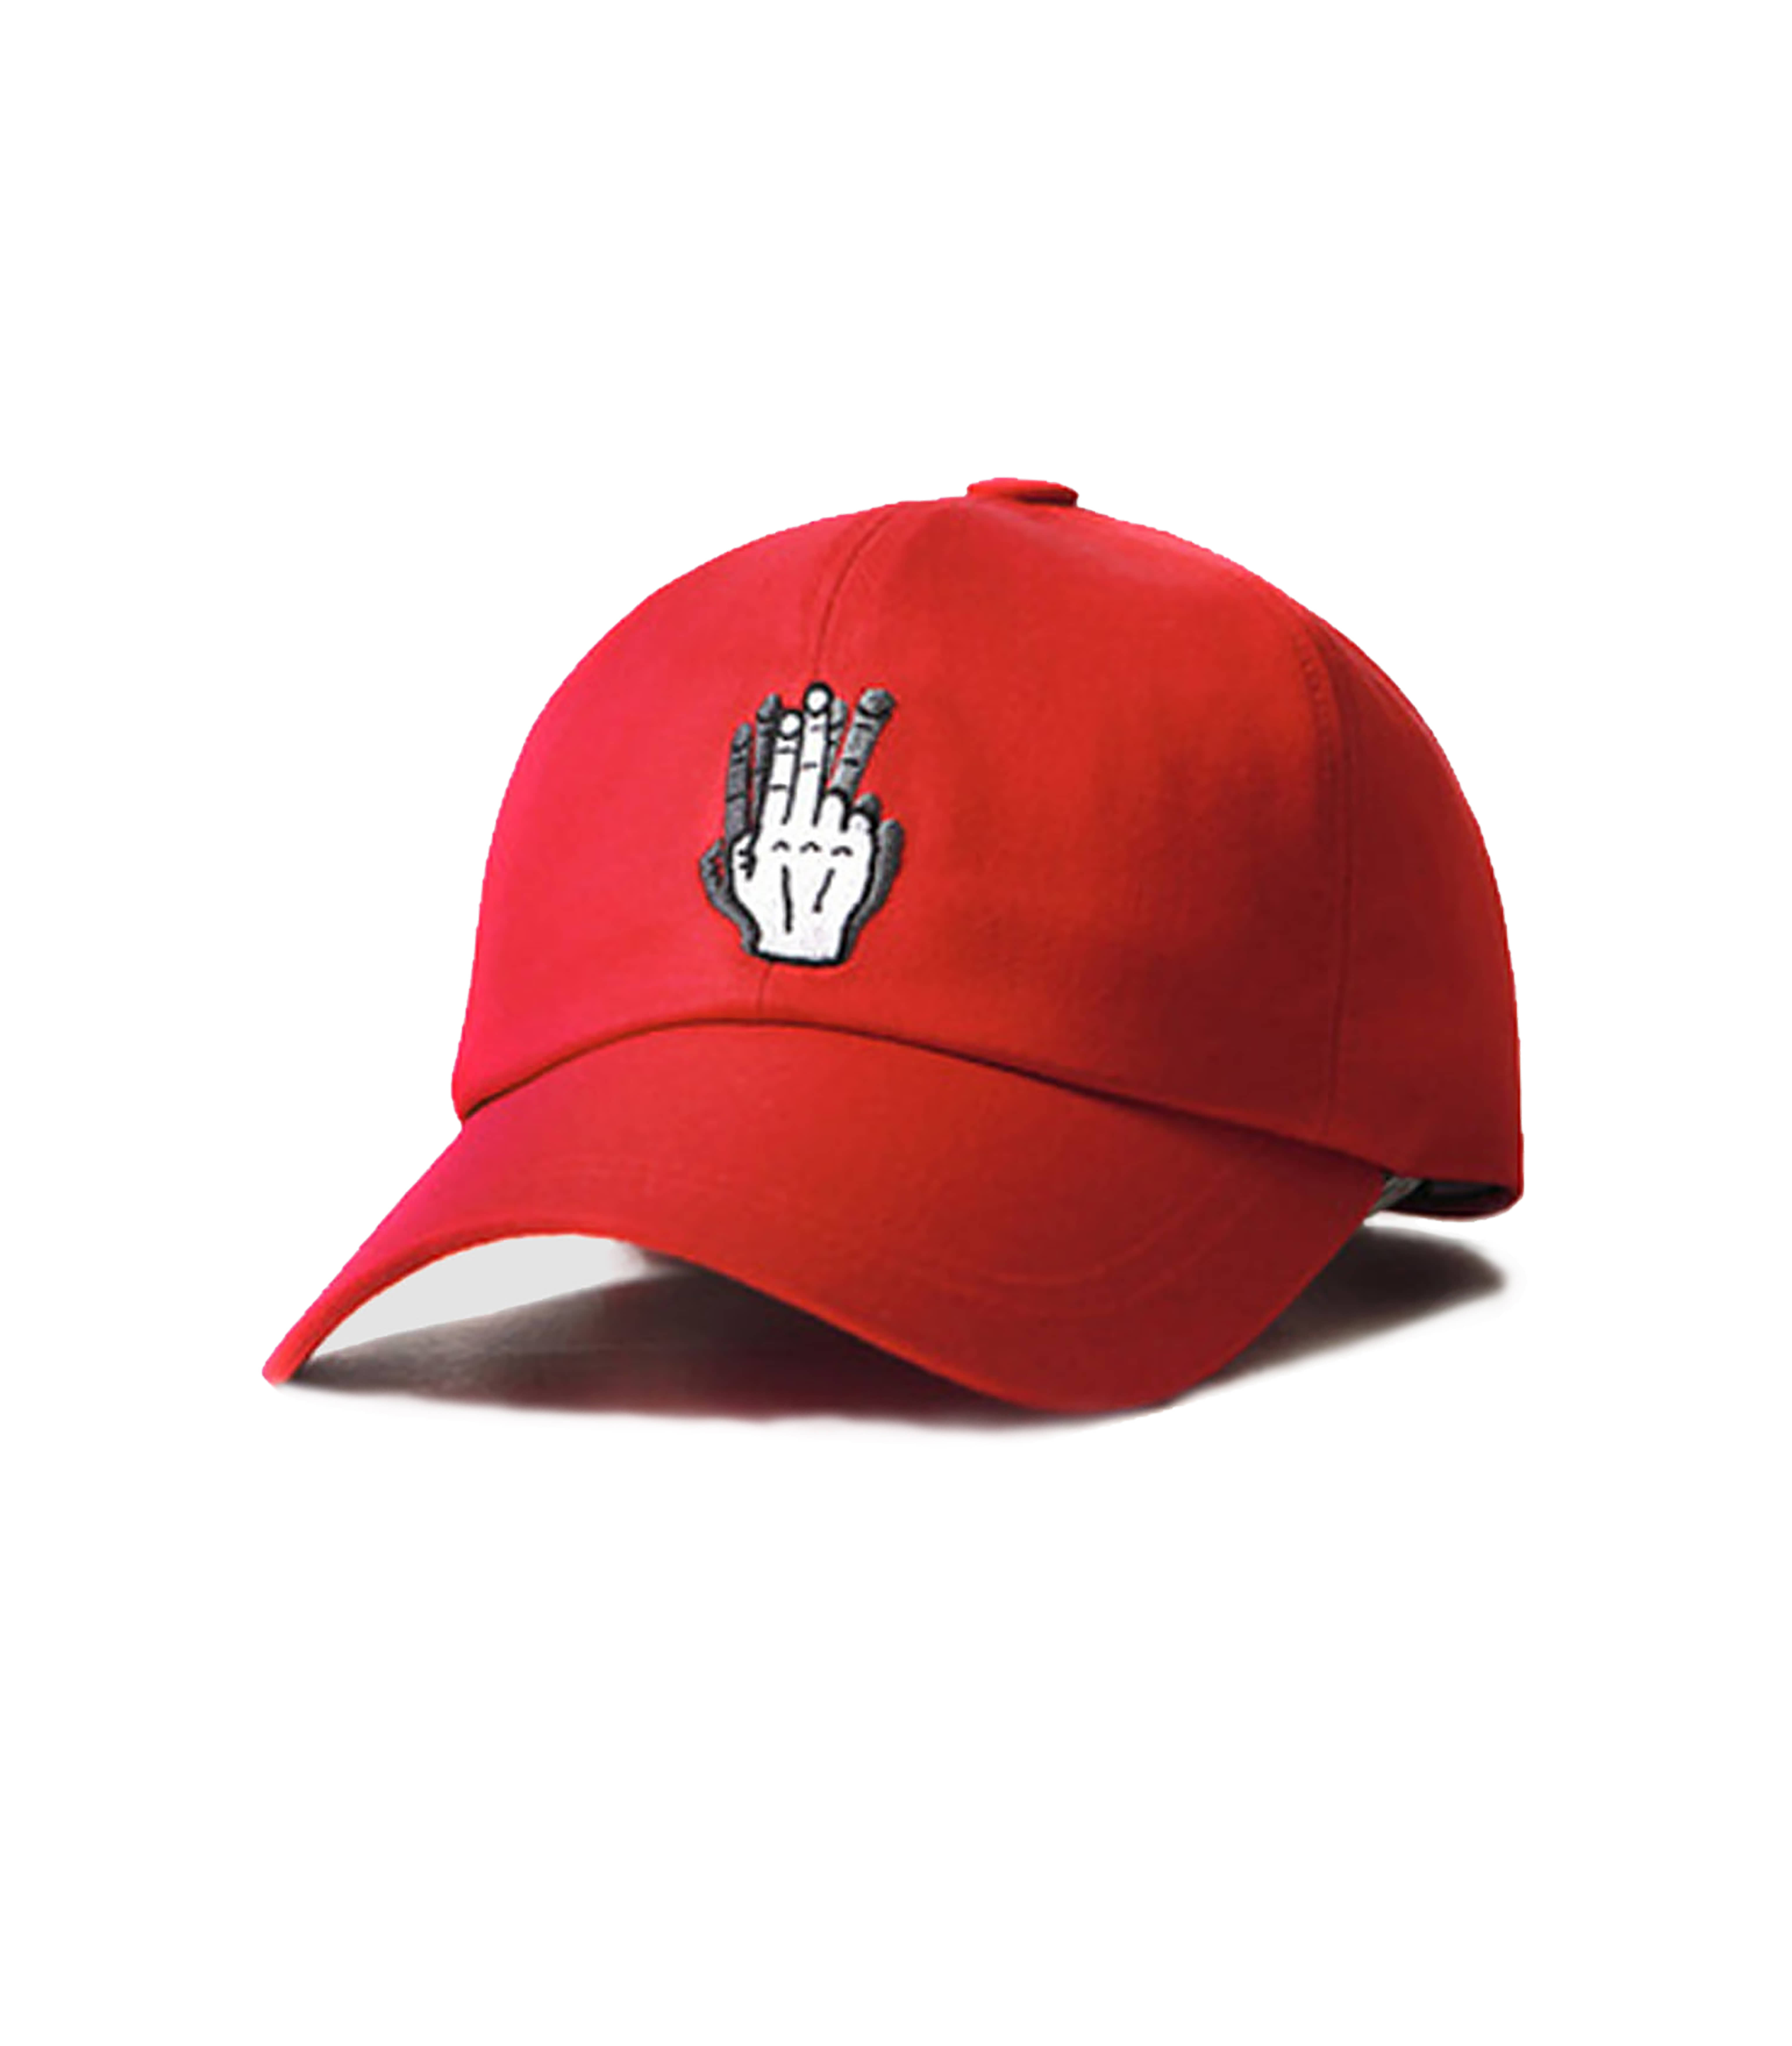 VIBRATE - HAND SHAKE SIGN BALL CAP (red)